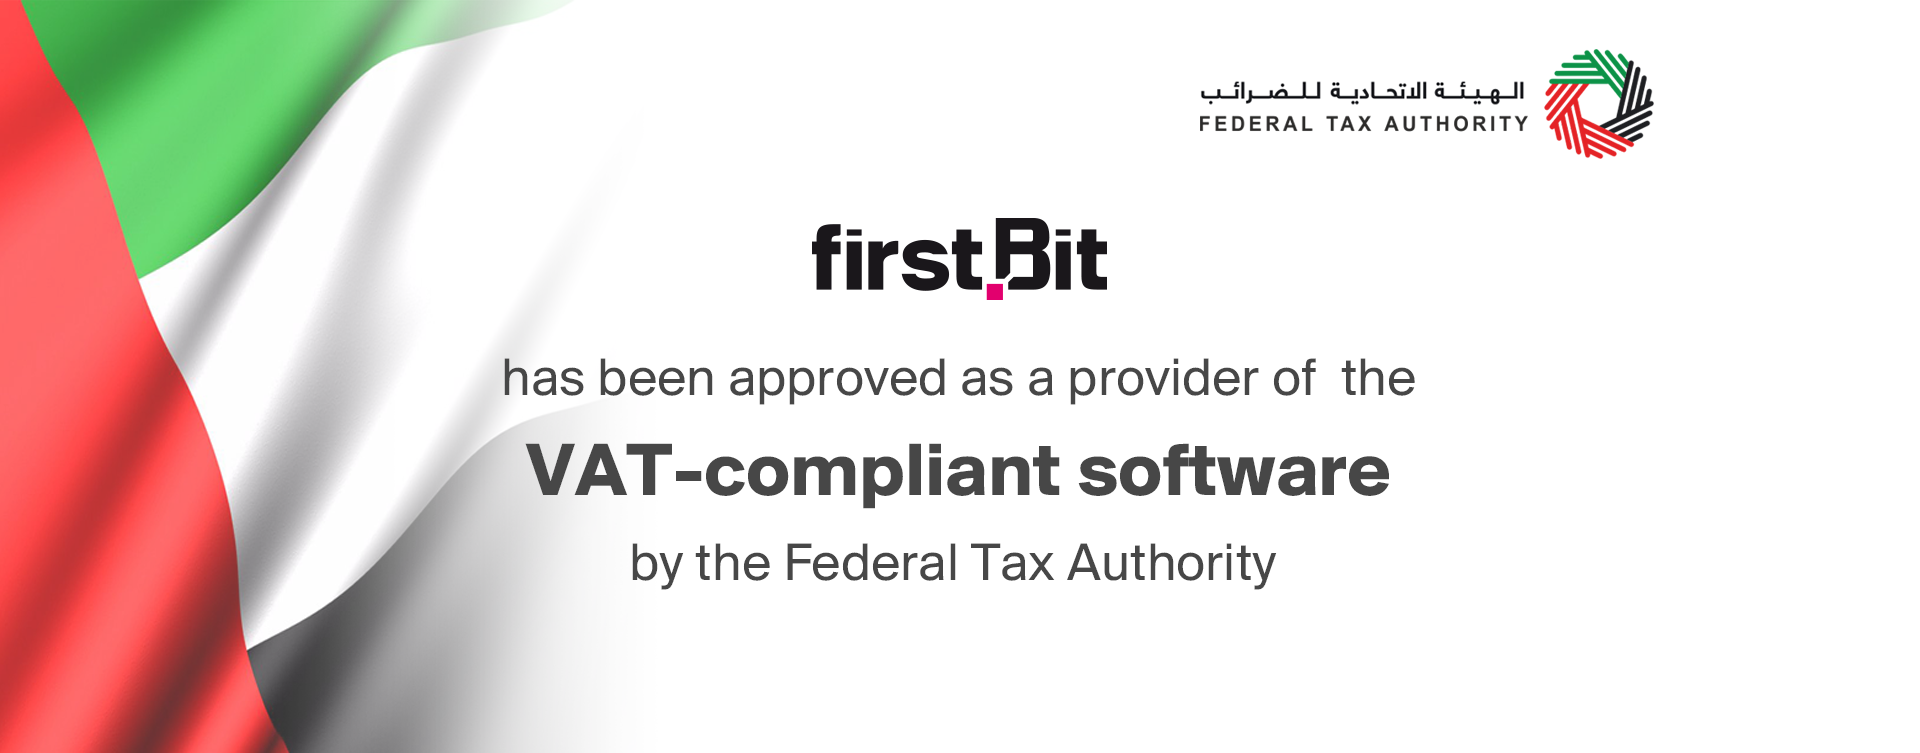 First Bit Has Renewed the UAE Federal Tax Authority (FTA) Accreditation